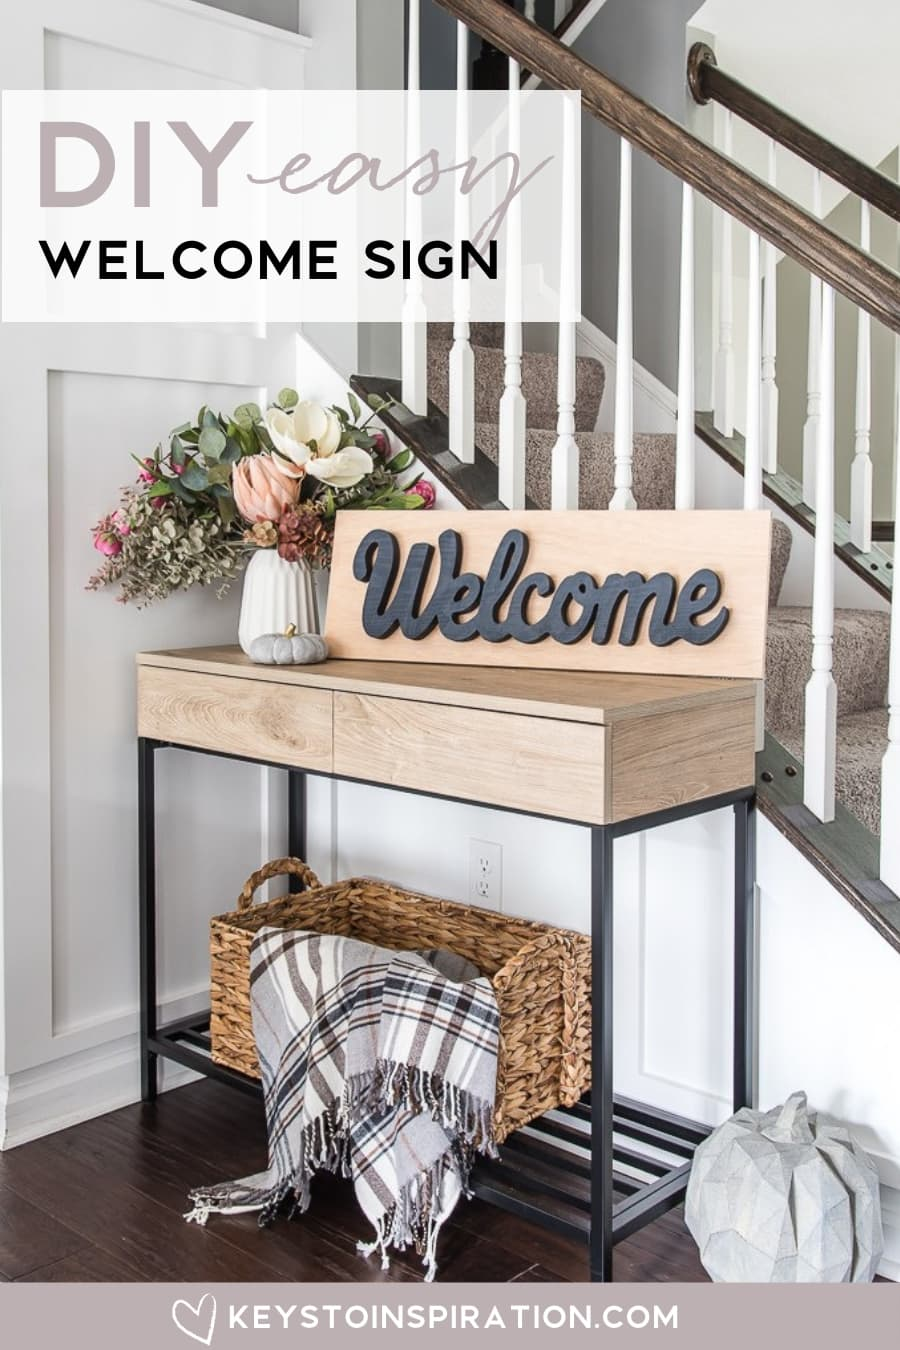 DIY welcome sign on target accent console table in dining room fall decor